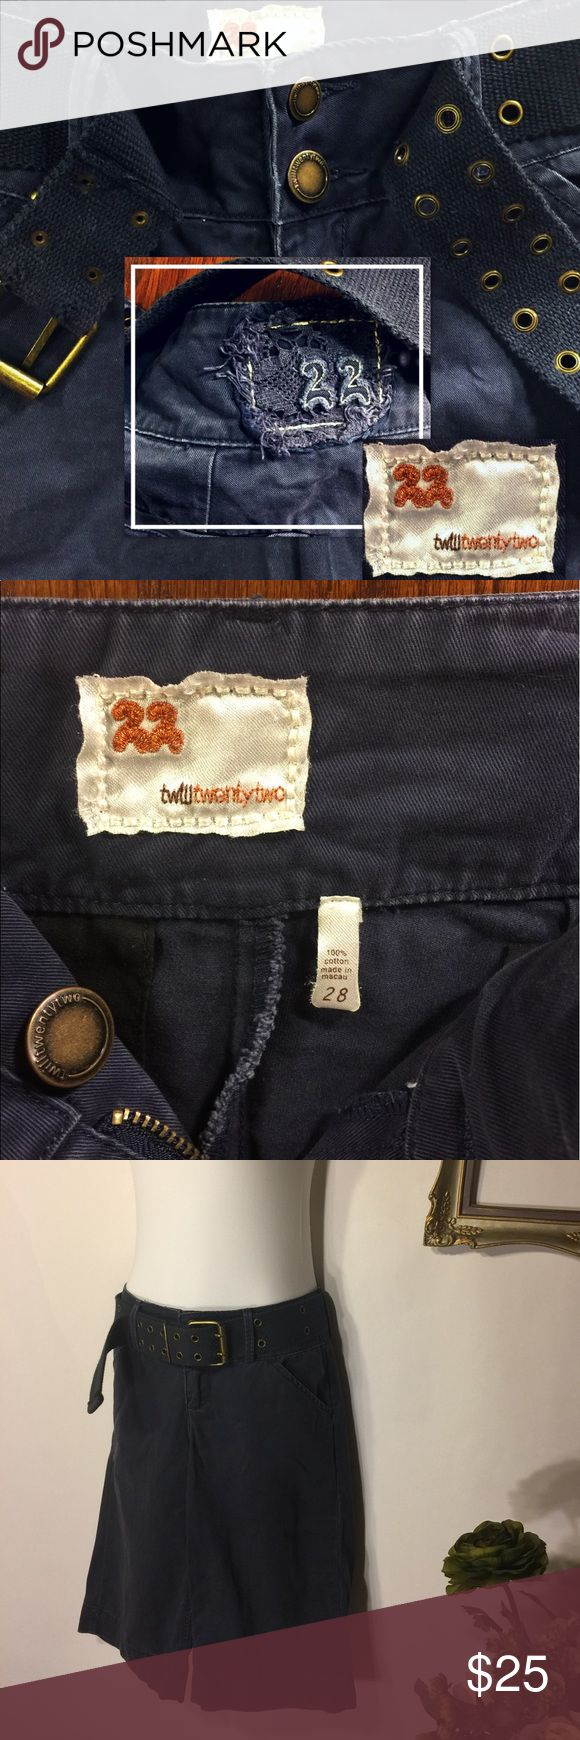 ANTHROPOLOGIE Twill 22 Bermuda Short Twill Twenty Two from Anthropologie shorts. Women's size 28. Dark blue. Bermuda length, with cargo pockets. Incredible quality, in amazing shape. Like new condition. Anthropologie Shorts